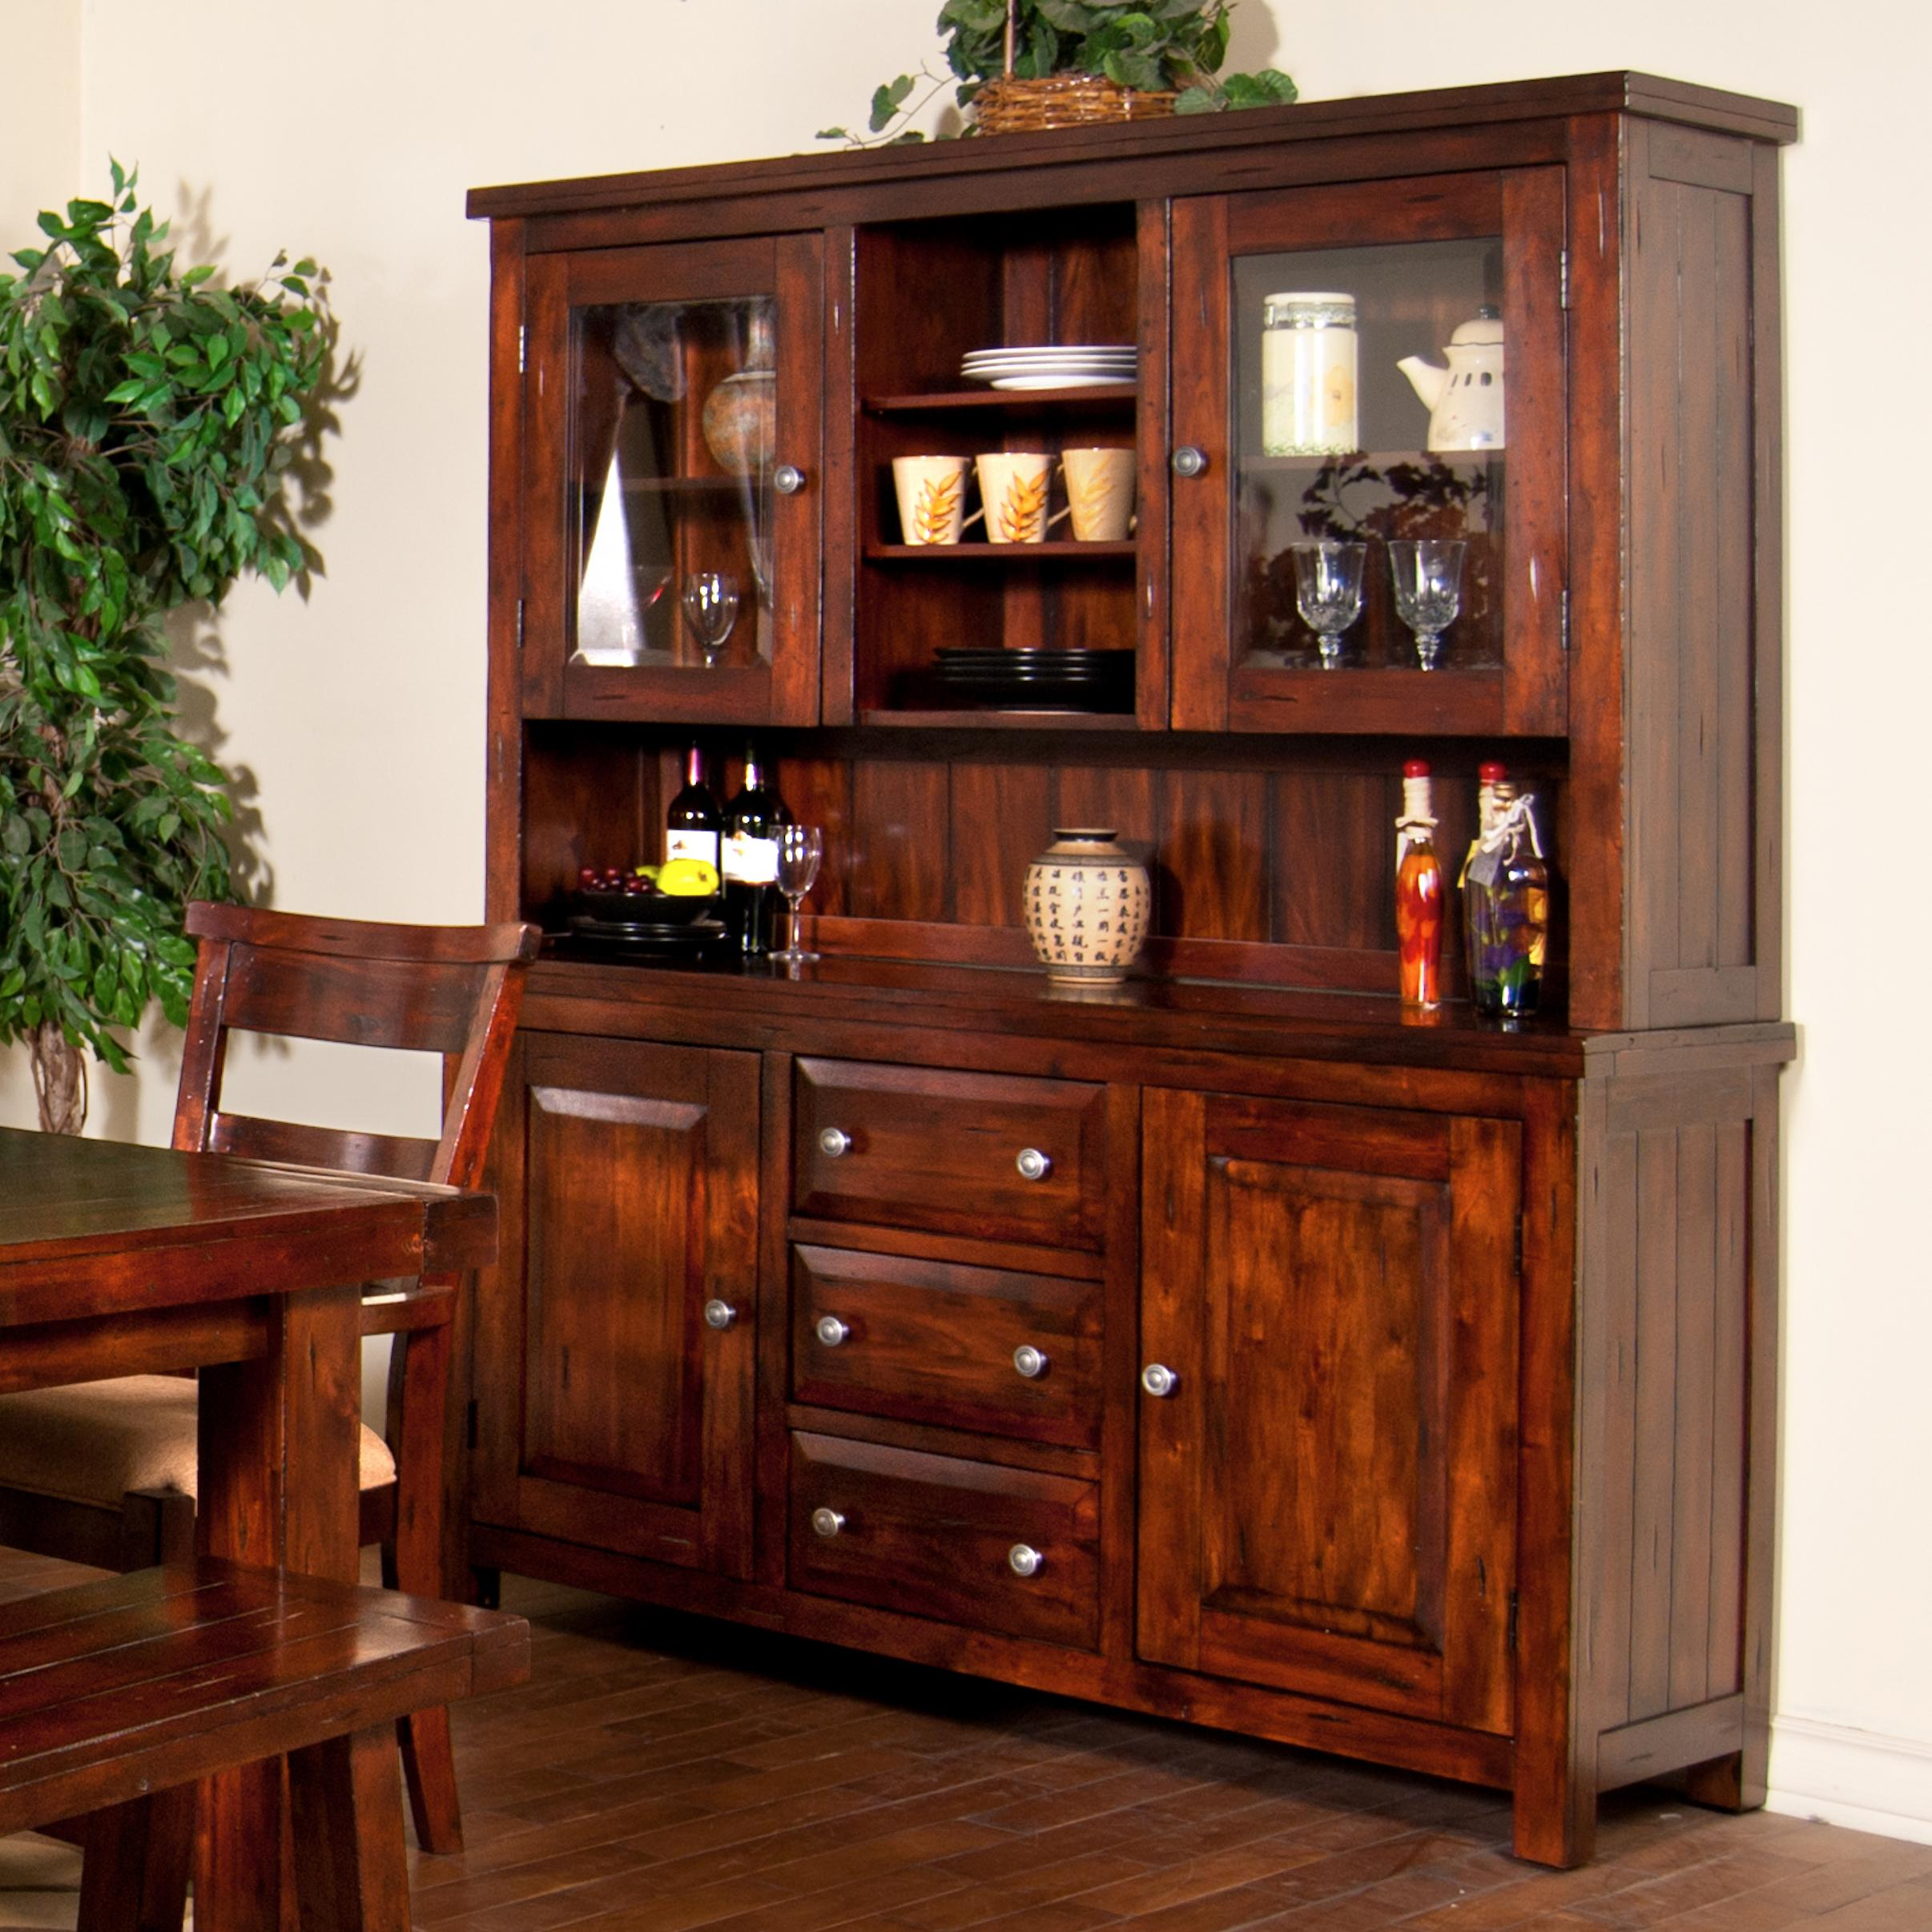 Vineyard 2 piece china cabinet with glass hutch doors by for Dining room buffet cabinet designs